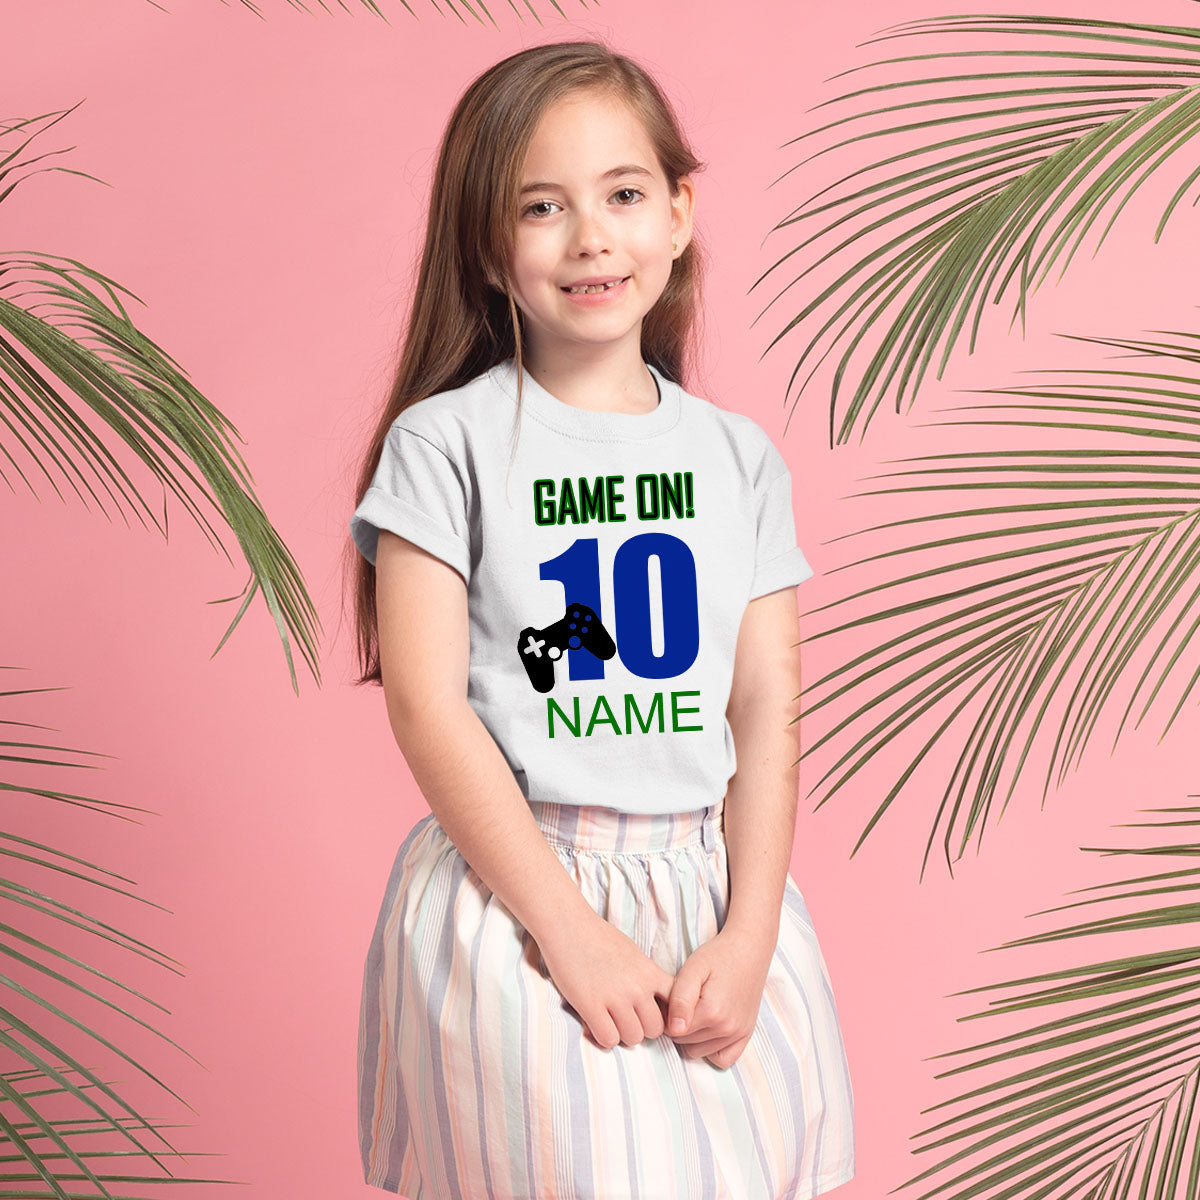 Sprinklecart Customized Name Printed Game On Kids 10th Birthday Wear for Your Little Star